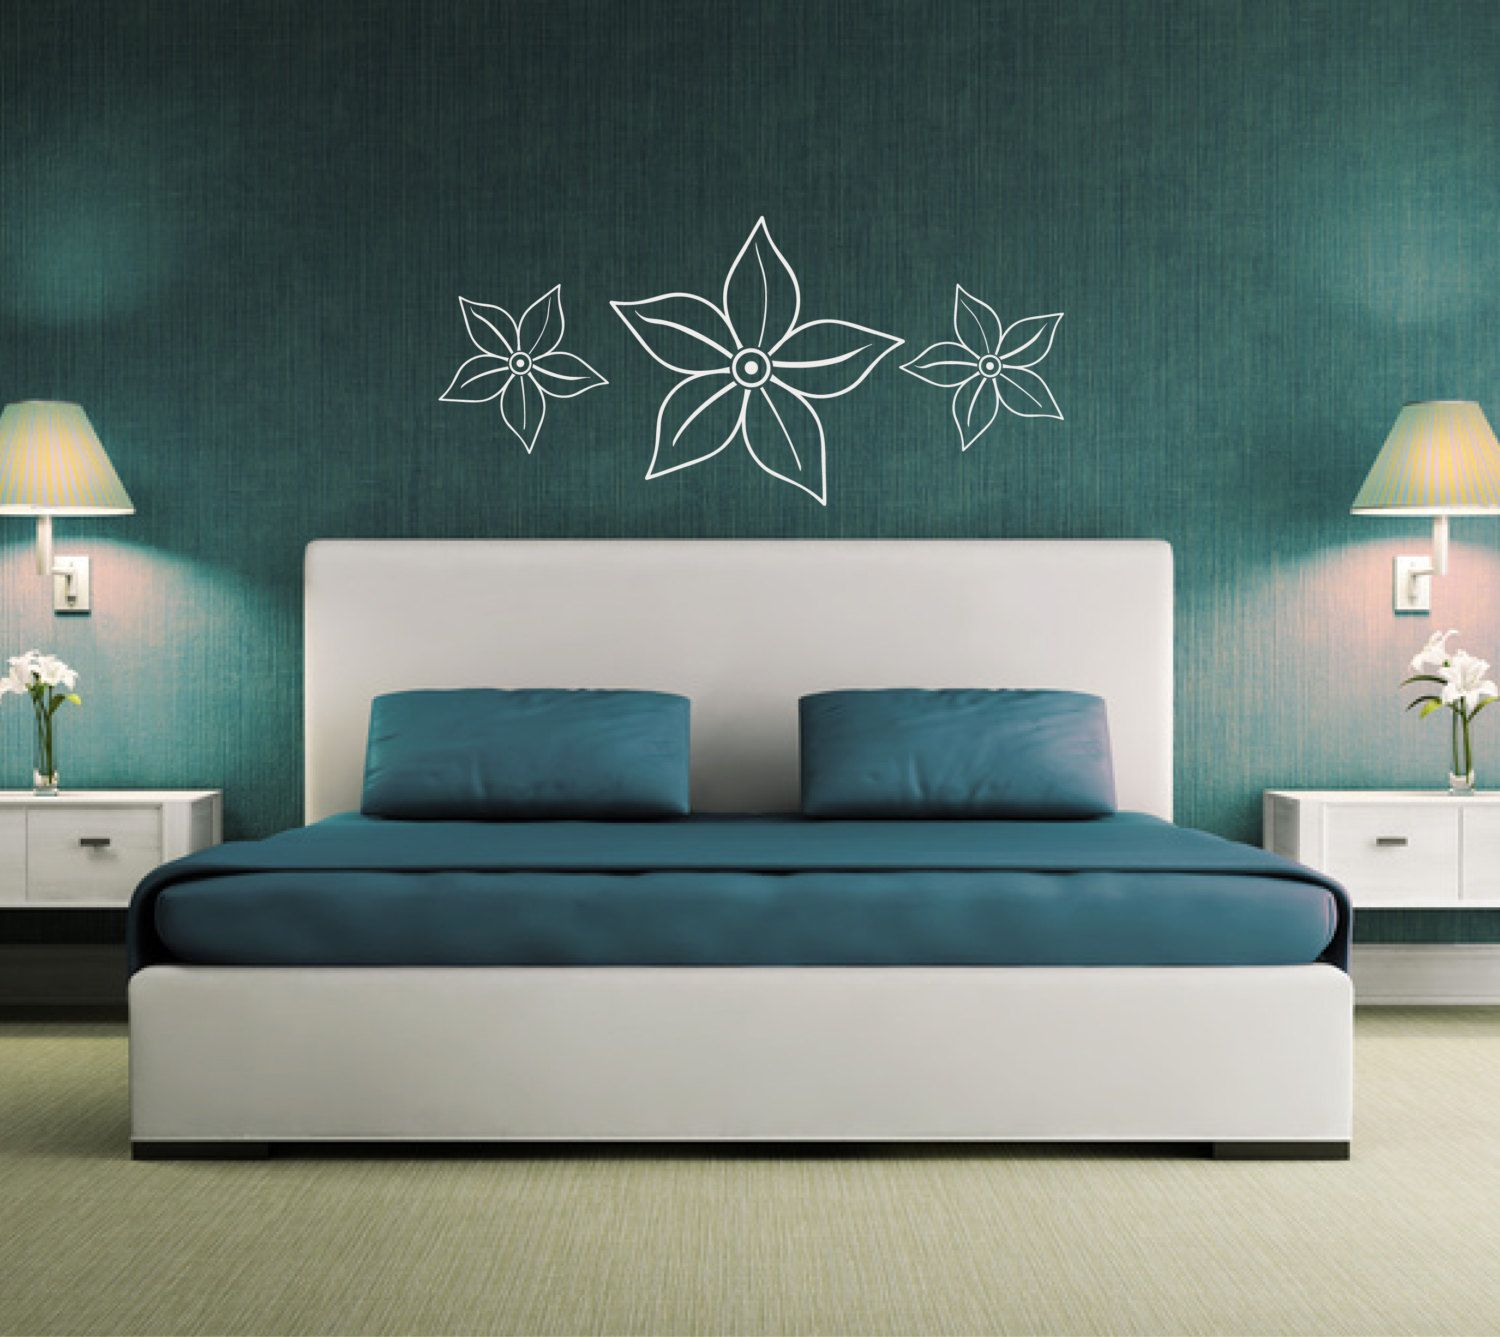 flower wall sticker above bed decor wall graphic decal over bed wall art girls bedroom. Black Bedroom Furniture Sets. Home Design Ideas